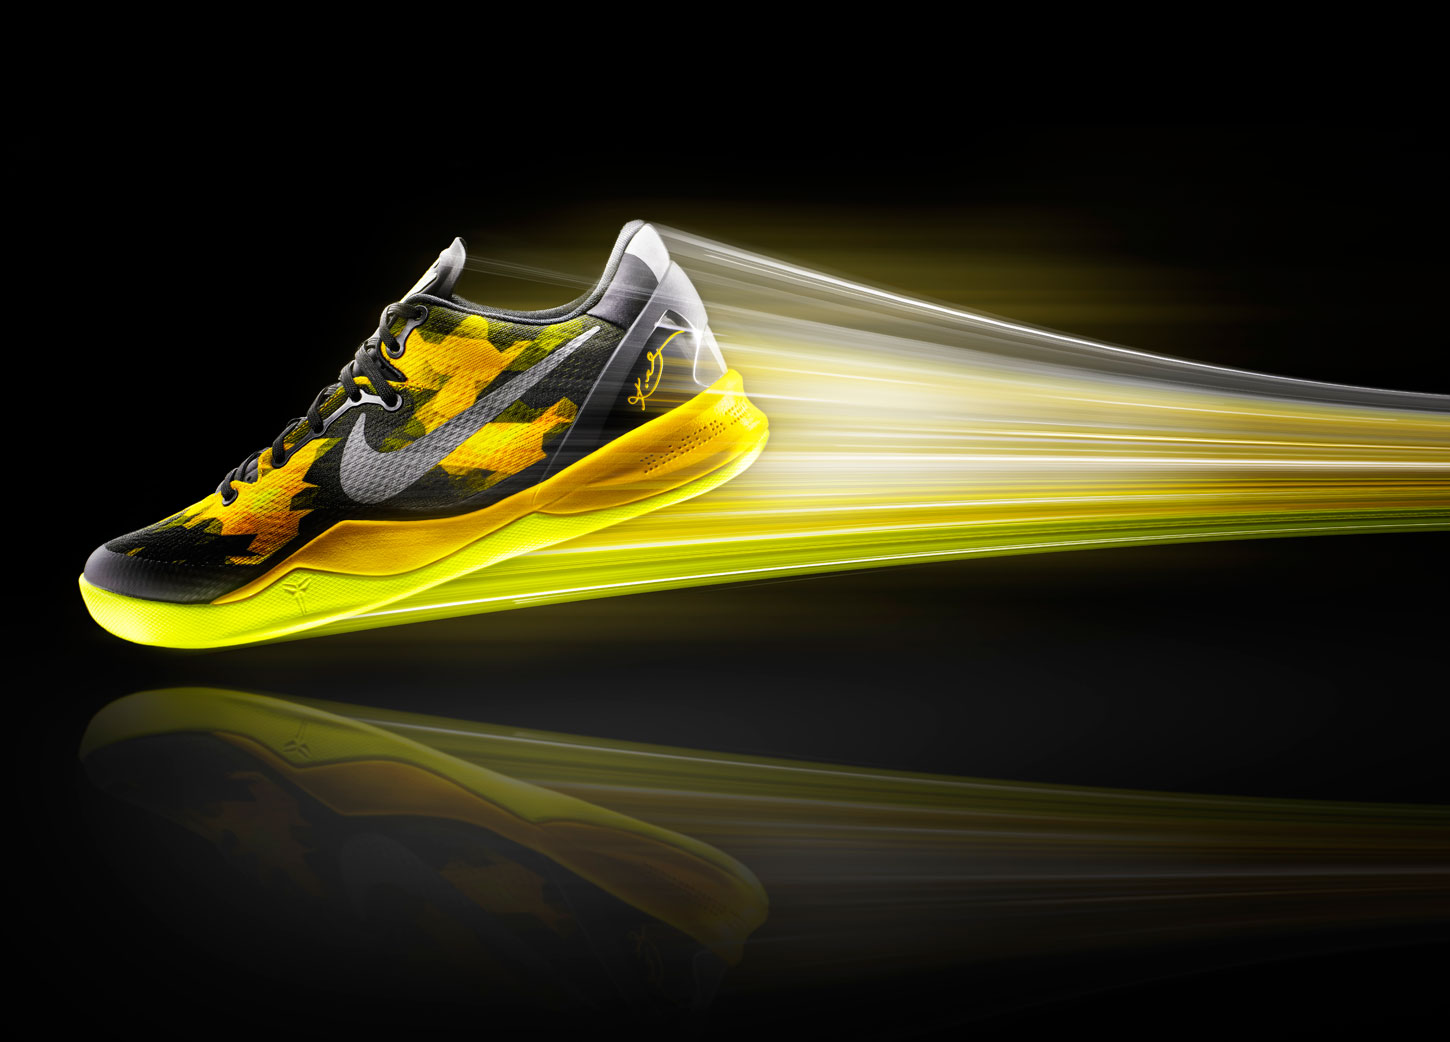 Nike Kobe 8 reviewed by Peyton Mortellite for the Sneakers App